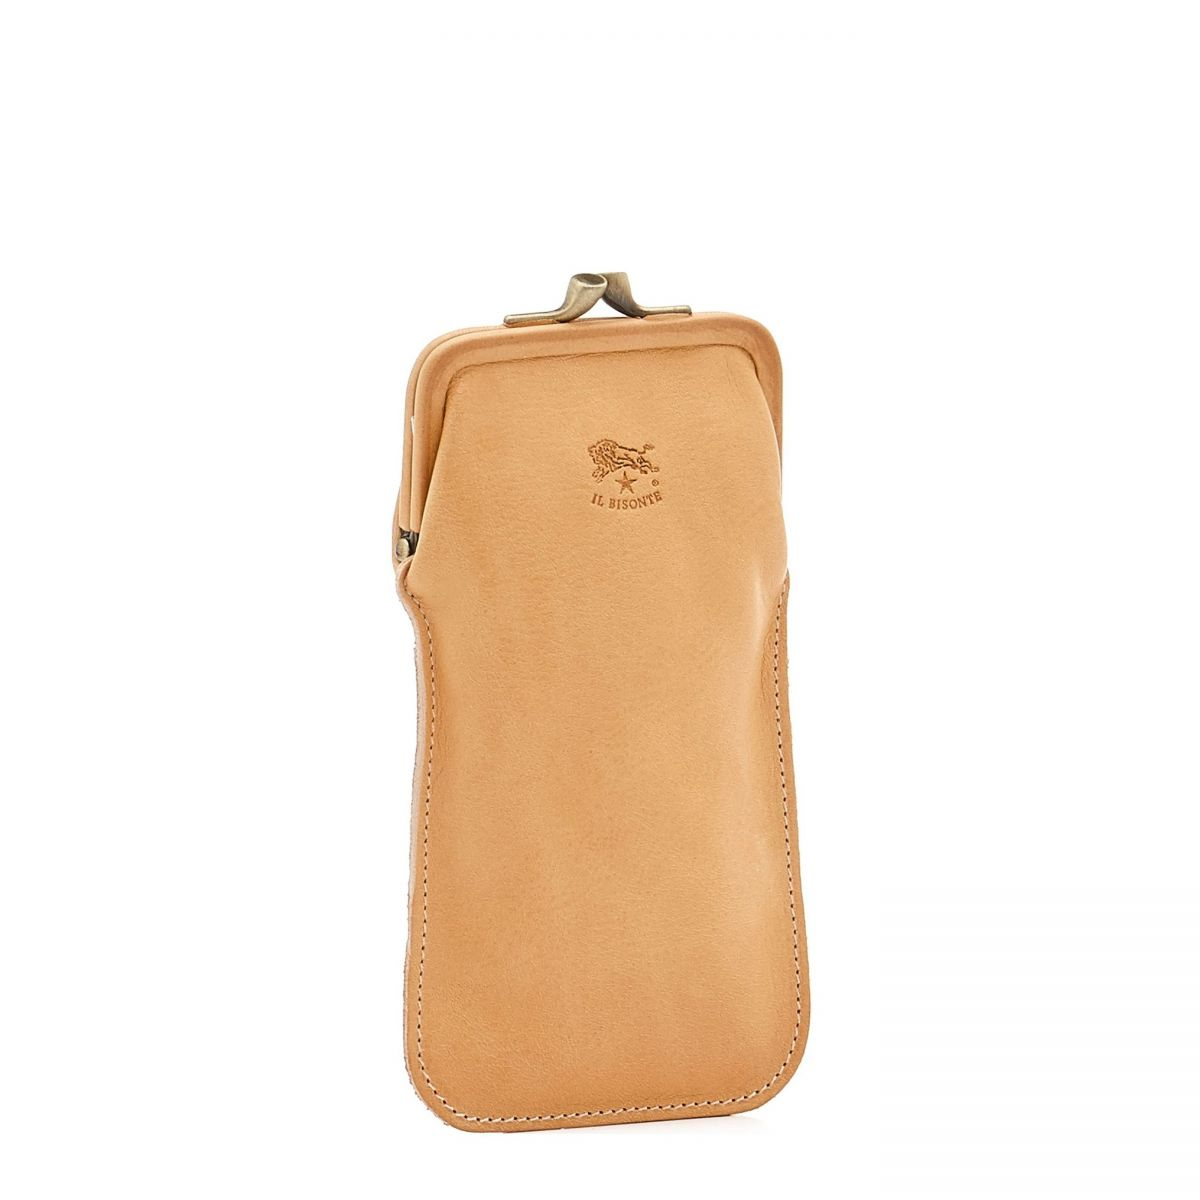 Case in Cowhide Double Leather color Natural - SCA025 | Details